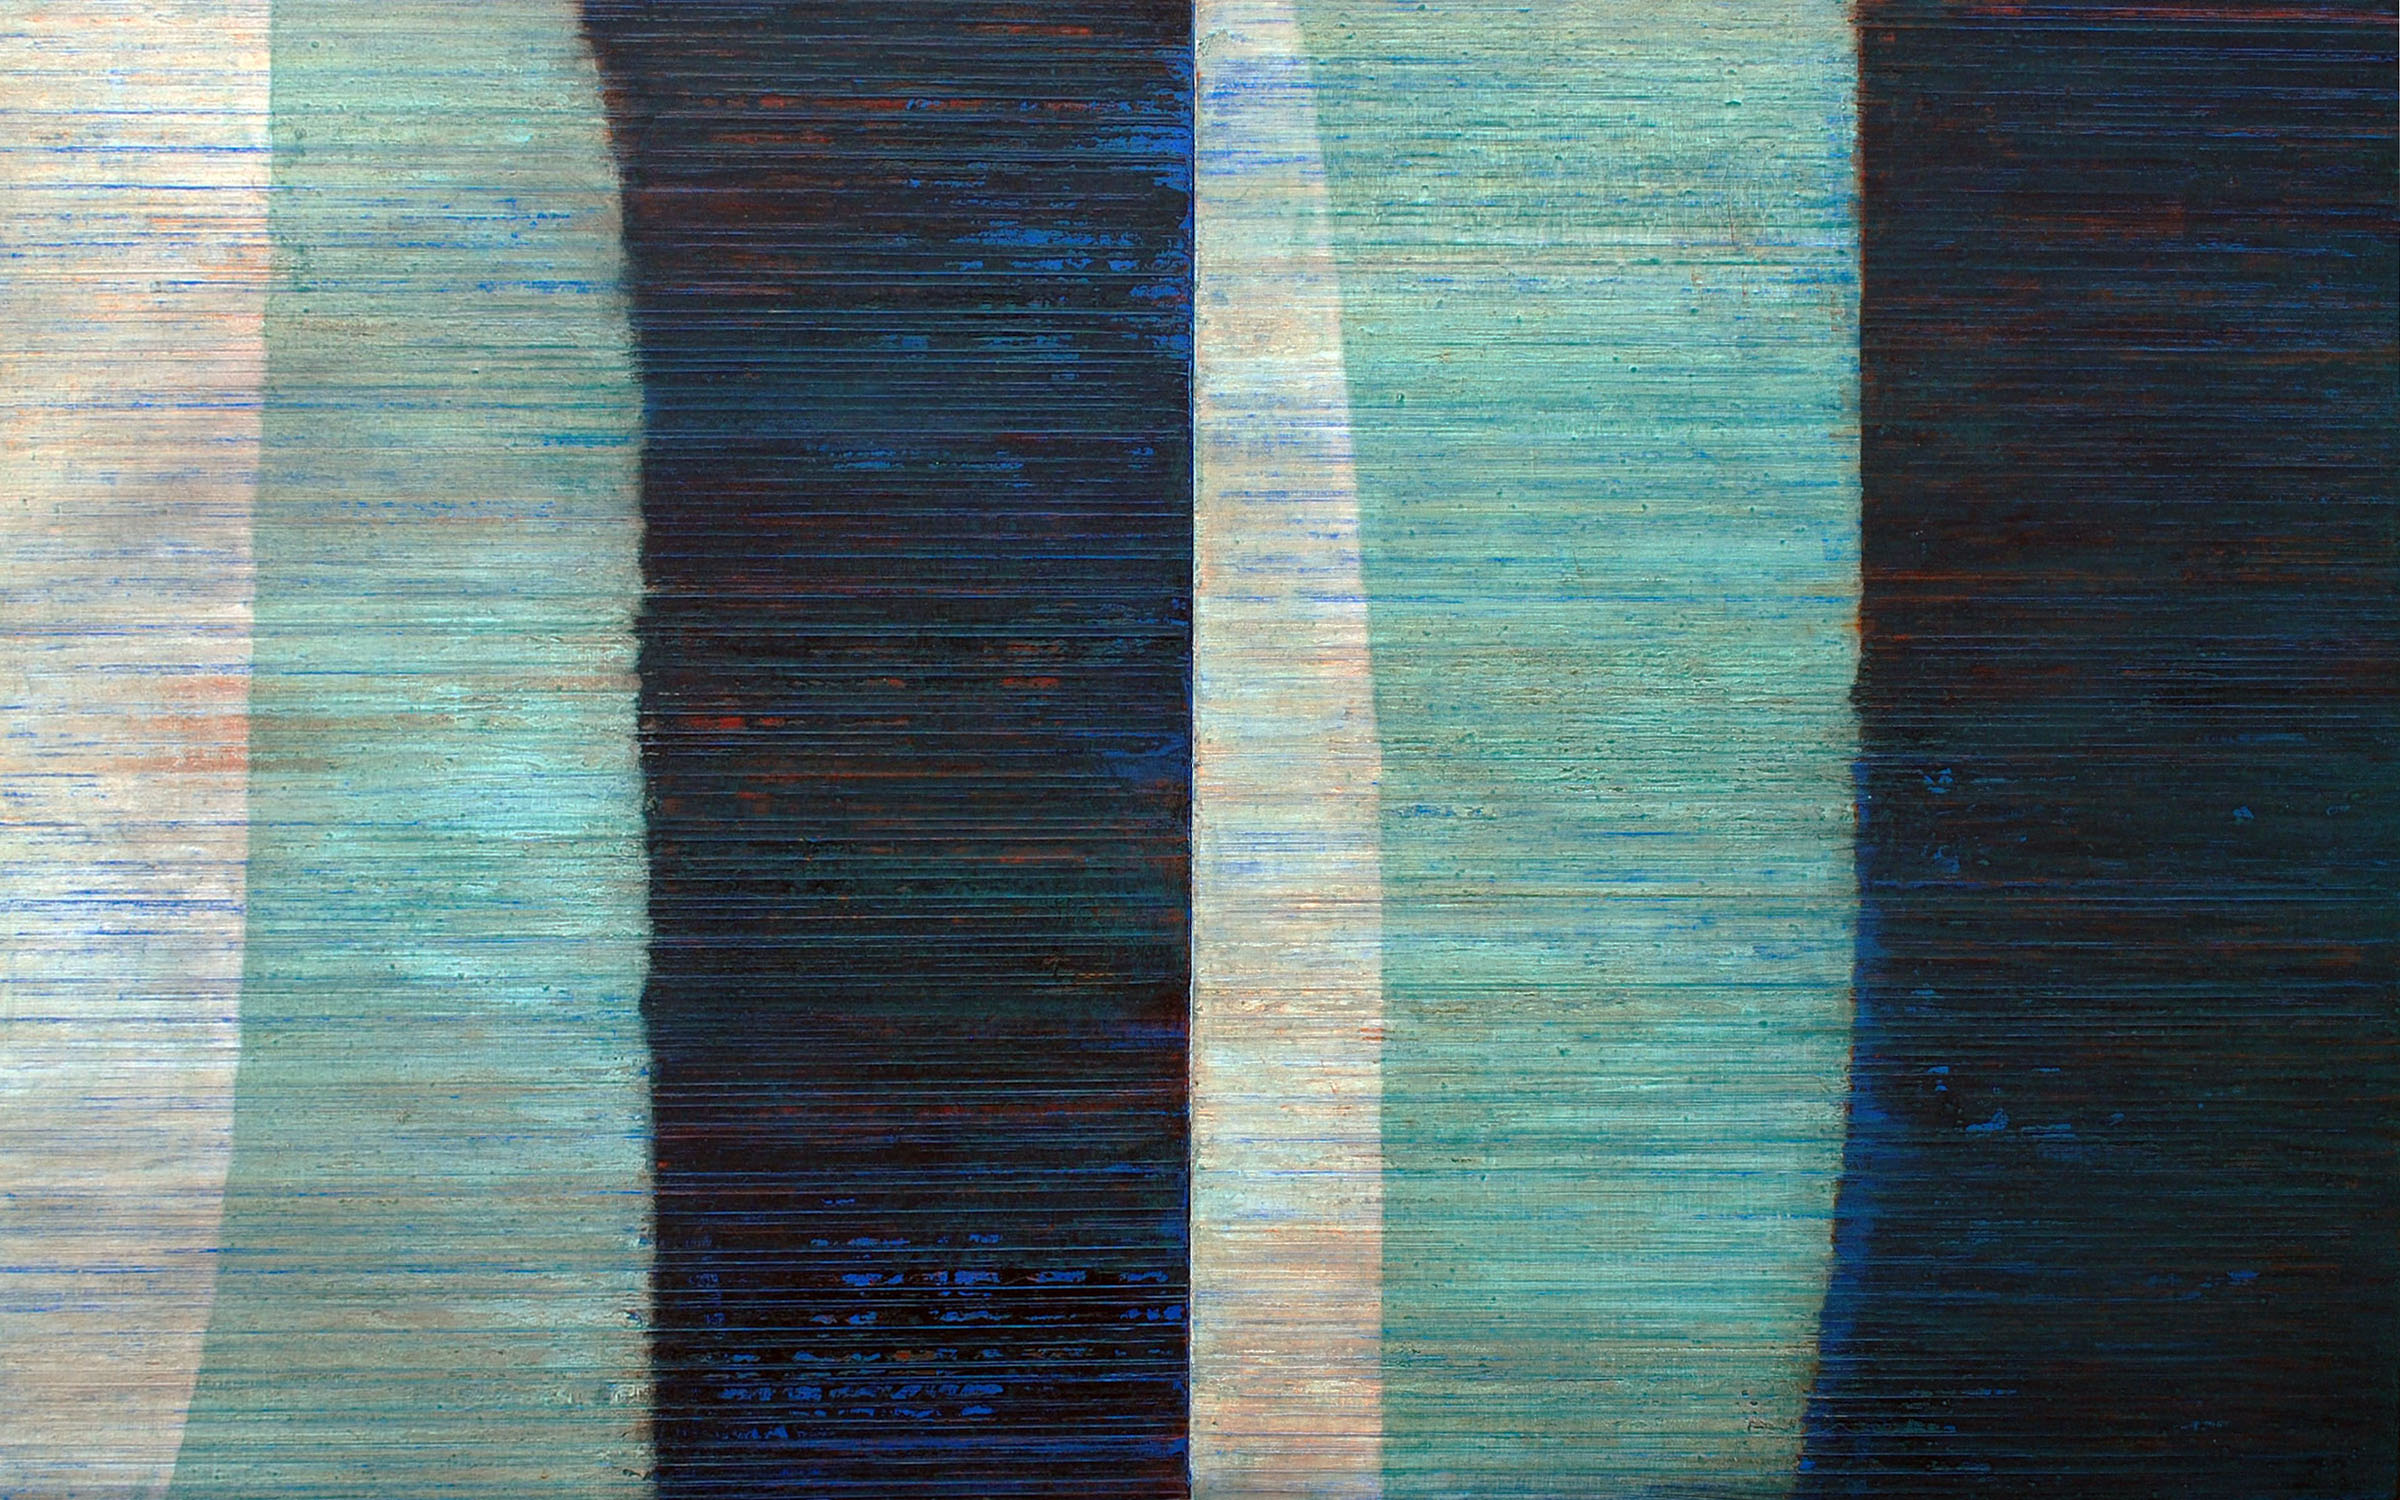 Linea Terminale: 11.12, 2012, Oil on linen over panels, 20 x 36 inches.